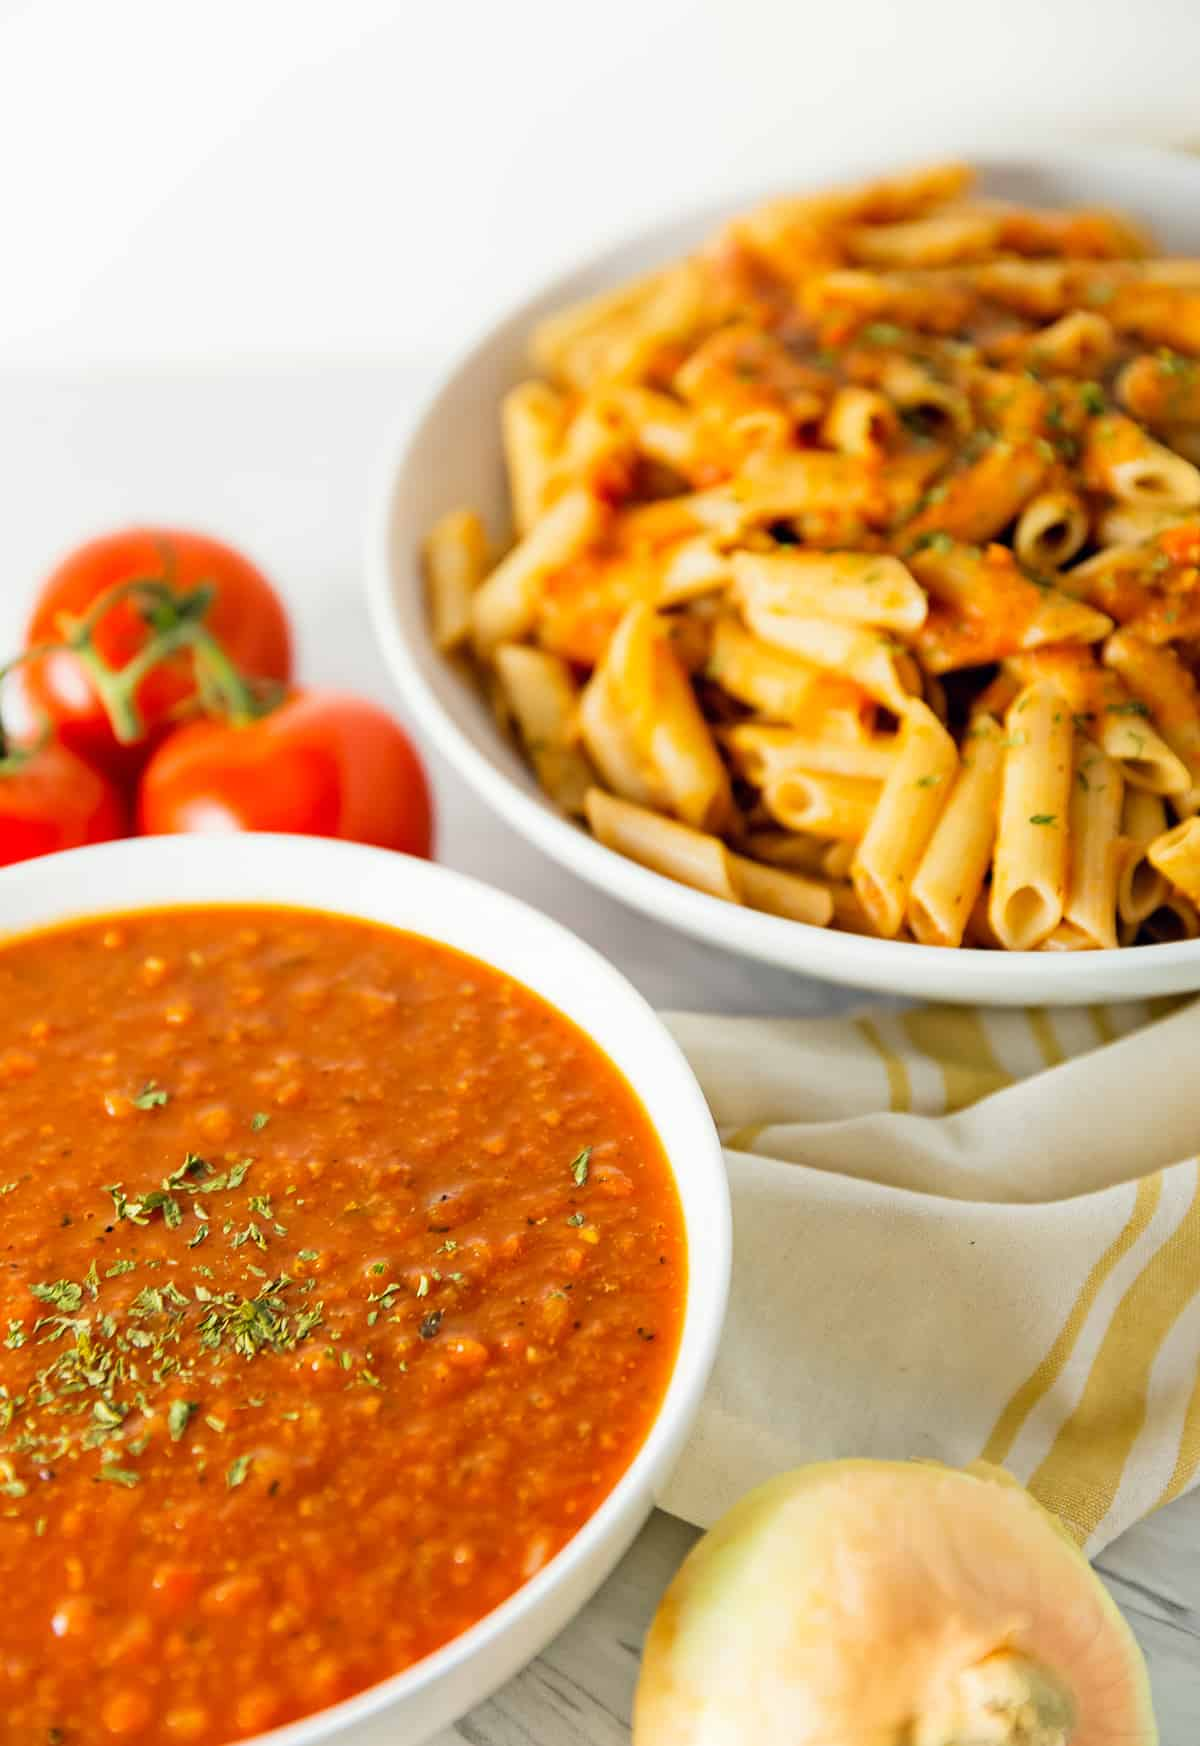 Italian, Italian Pasta, Italian Pasta Sauce, Pasta Sauce, marinara, Italian marinara, Italian gravy, gravy, red sauce, Italian red sauce, tomato sauce, tomato, vegan Italian pasta, vegan Italian pasta sauce, vegan, vegan marinara sauce, vegan marinara, vegan gravy, vegan Italian gravy, vegetarian Italian pasta sauce, vegetarian, vegetarian marinara sauce, vegetarian marinara, vegetarian gravy, vegetarian Italian gravy, whole food plant based Italian pasta sauce, whole food plant based, whole food plant based marinara sauce, whole food plant based marinara, whole food plant based gravy, whole food plant based Italian gravy, wfpb Italian pasta, wfpb Italian pasta sauce, wfpb, wfpb marinara sauce, wfpb marinara, wfpb gravy, wfpb Italian gravy, oil free Italian pasta, oil free Italian pasta sauce, oil free, oil free marinara sauce, oil free marinara, oil free gravy, oil free Italian gravy, refined sugar free, healthy Italian pasta, healthy Italian pasta sauce, healthy, healthy marinara sauce, healthy marinara, healthy gravy, healthy Italian gravy,